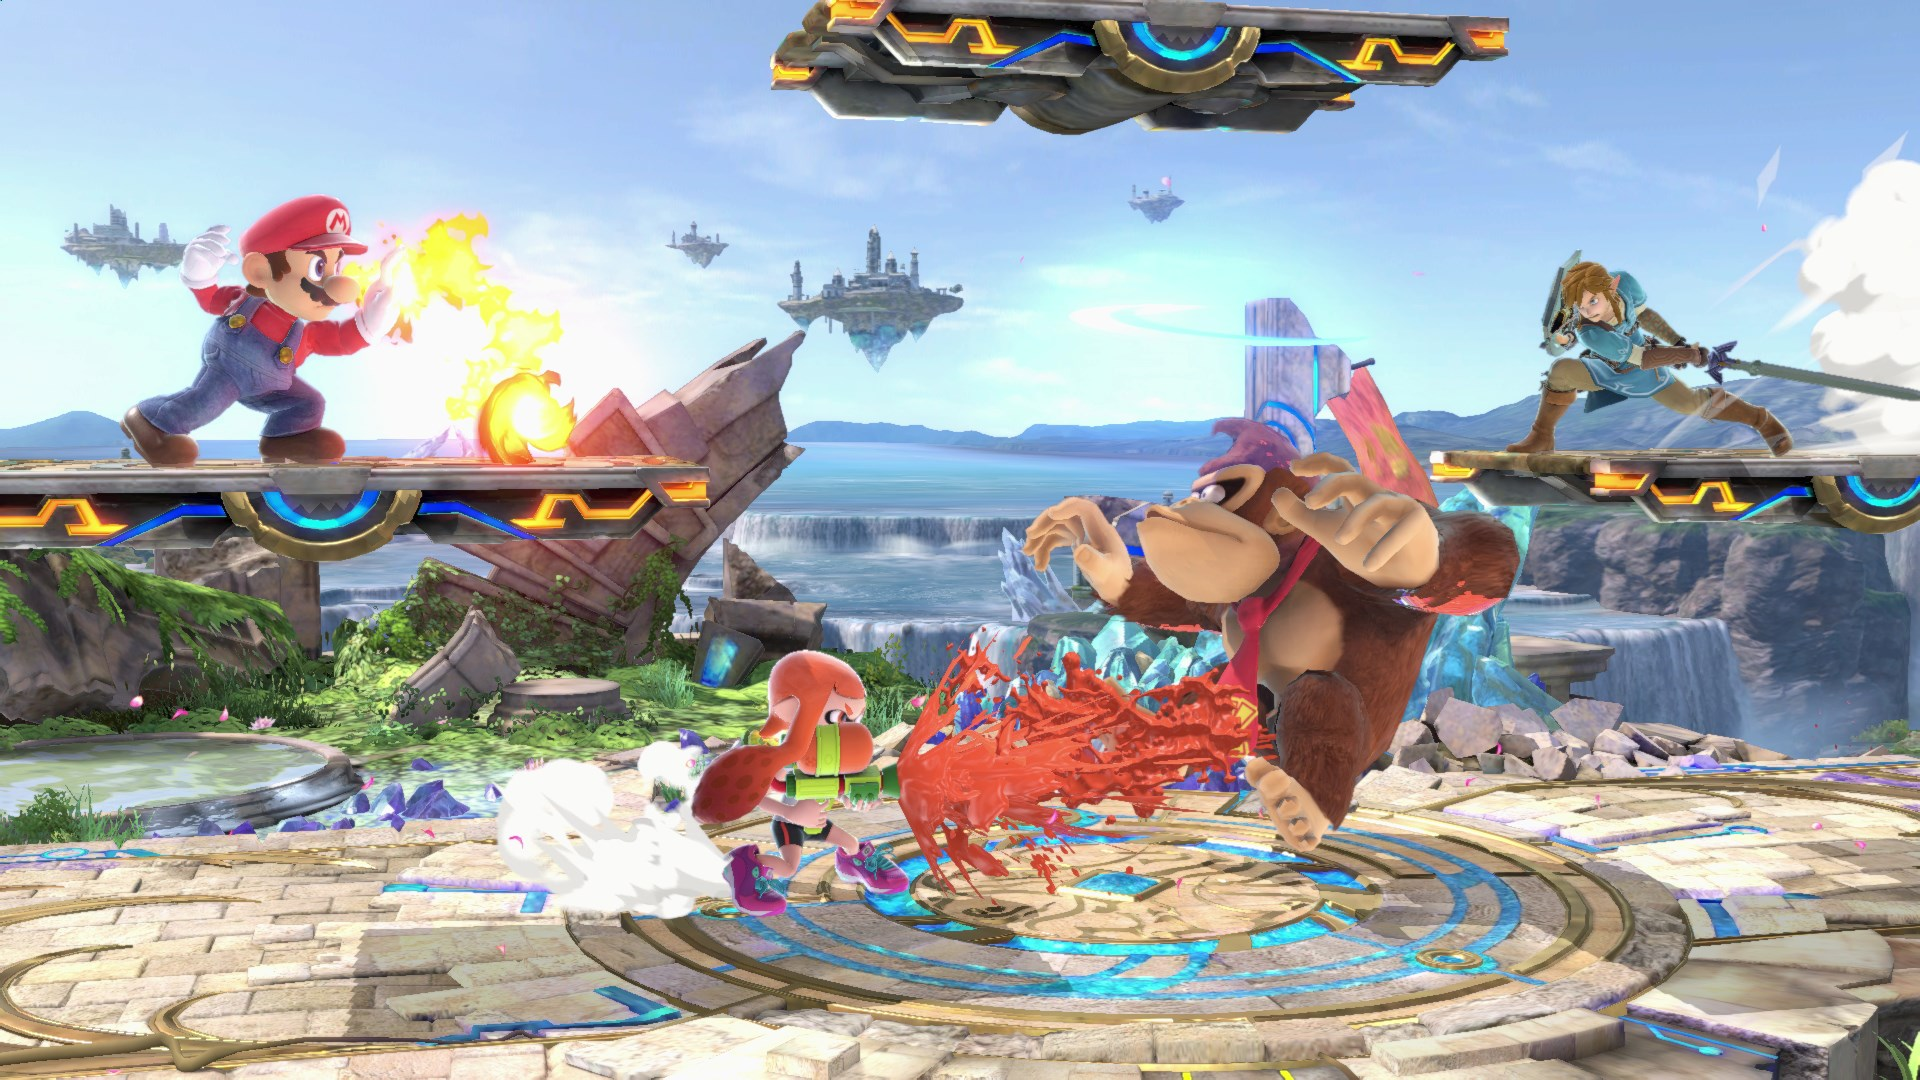 Smash Bros. fans are using portals to turn fights into Dragon Ball Z